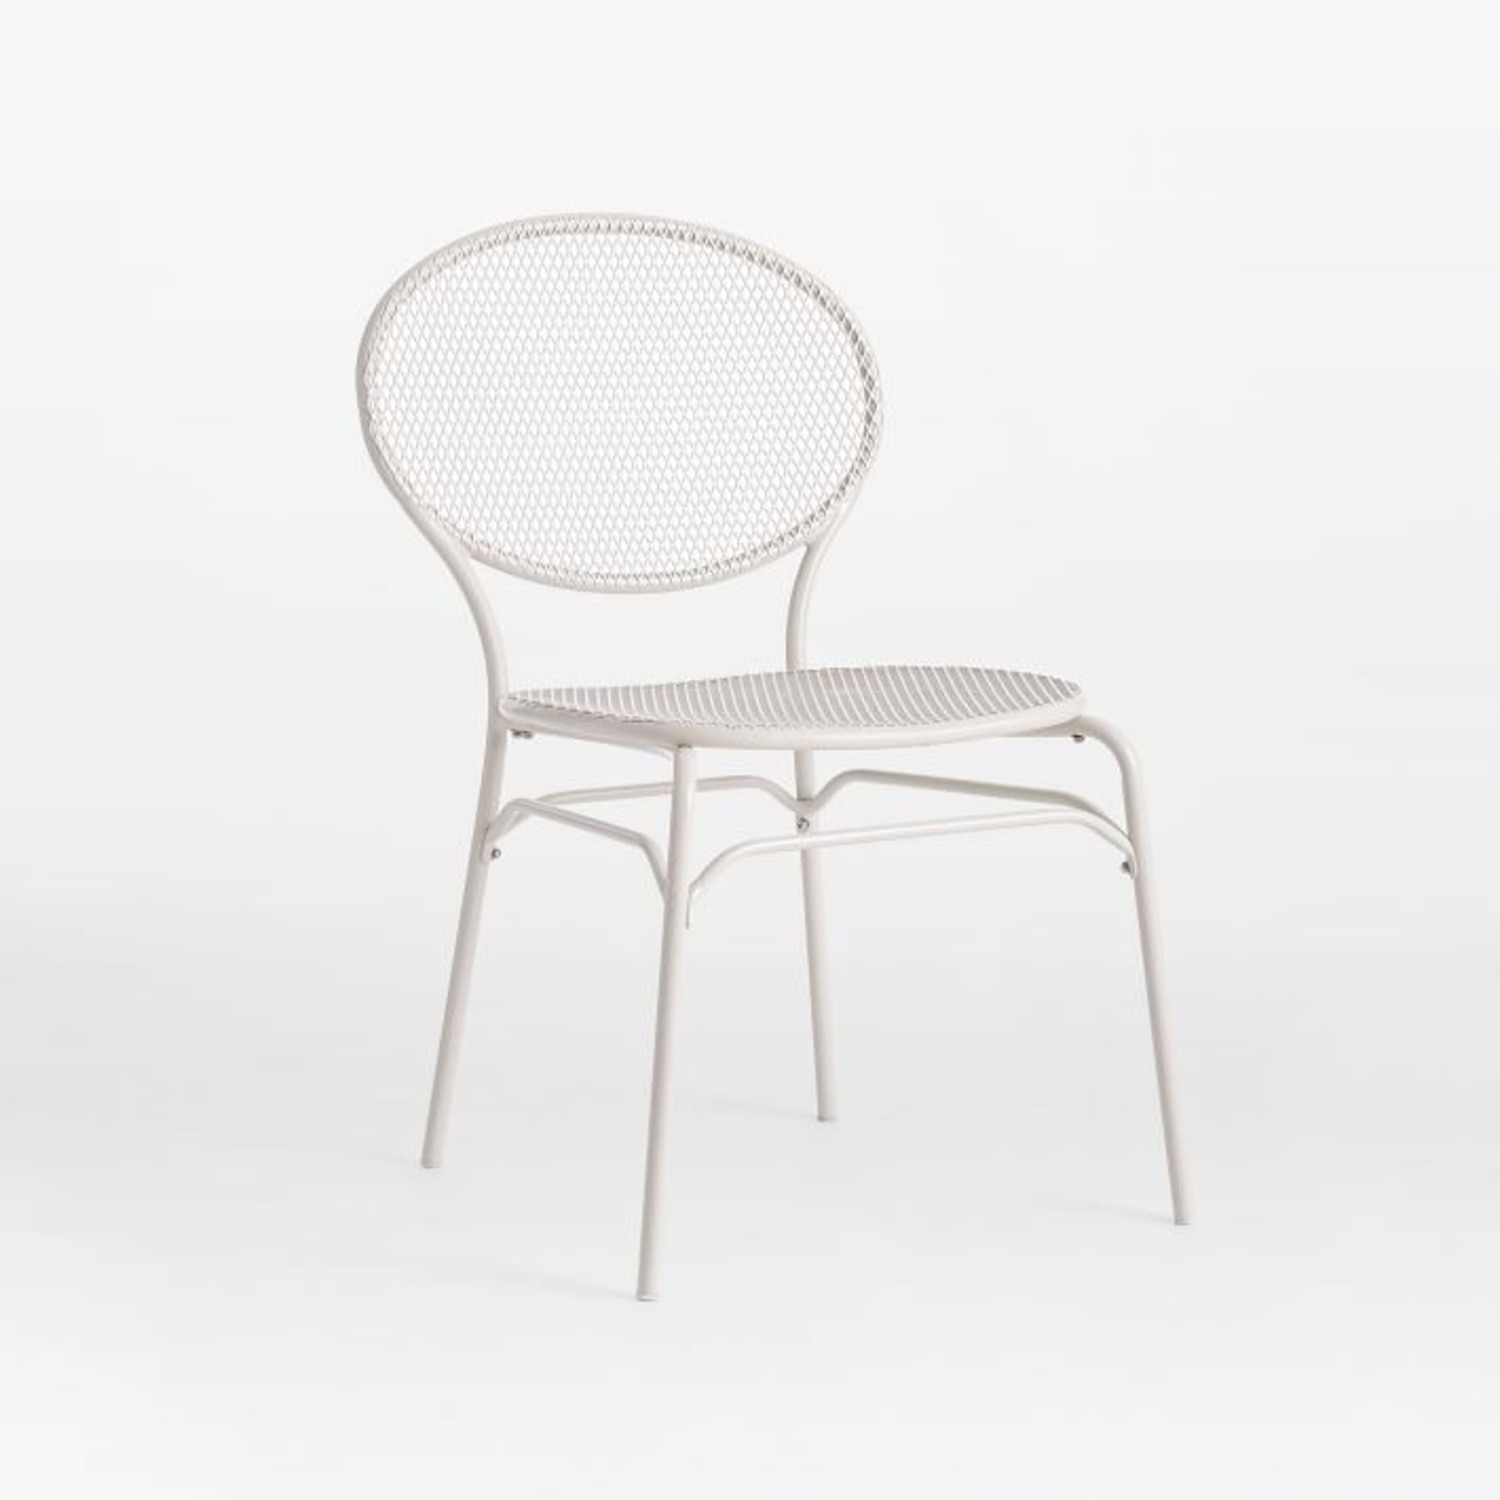 West Elm Kyra Outdoor Bistro Chair - image-1